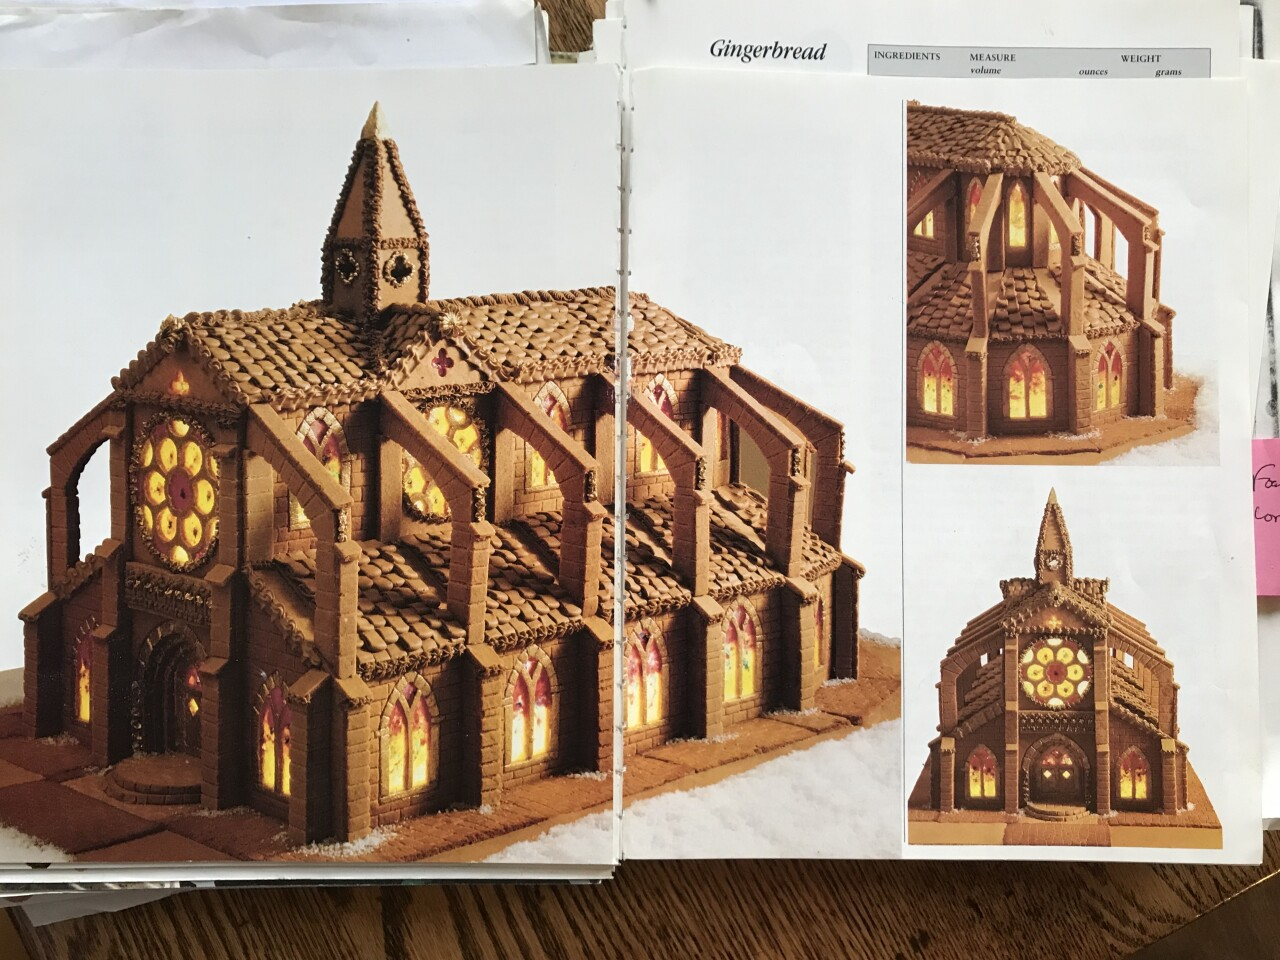 Gingerbread Notre Dame cathedral